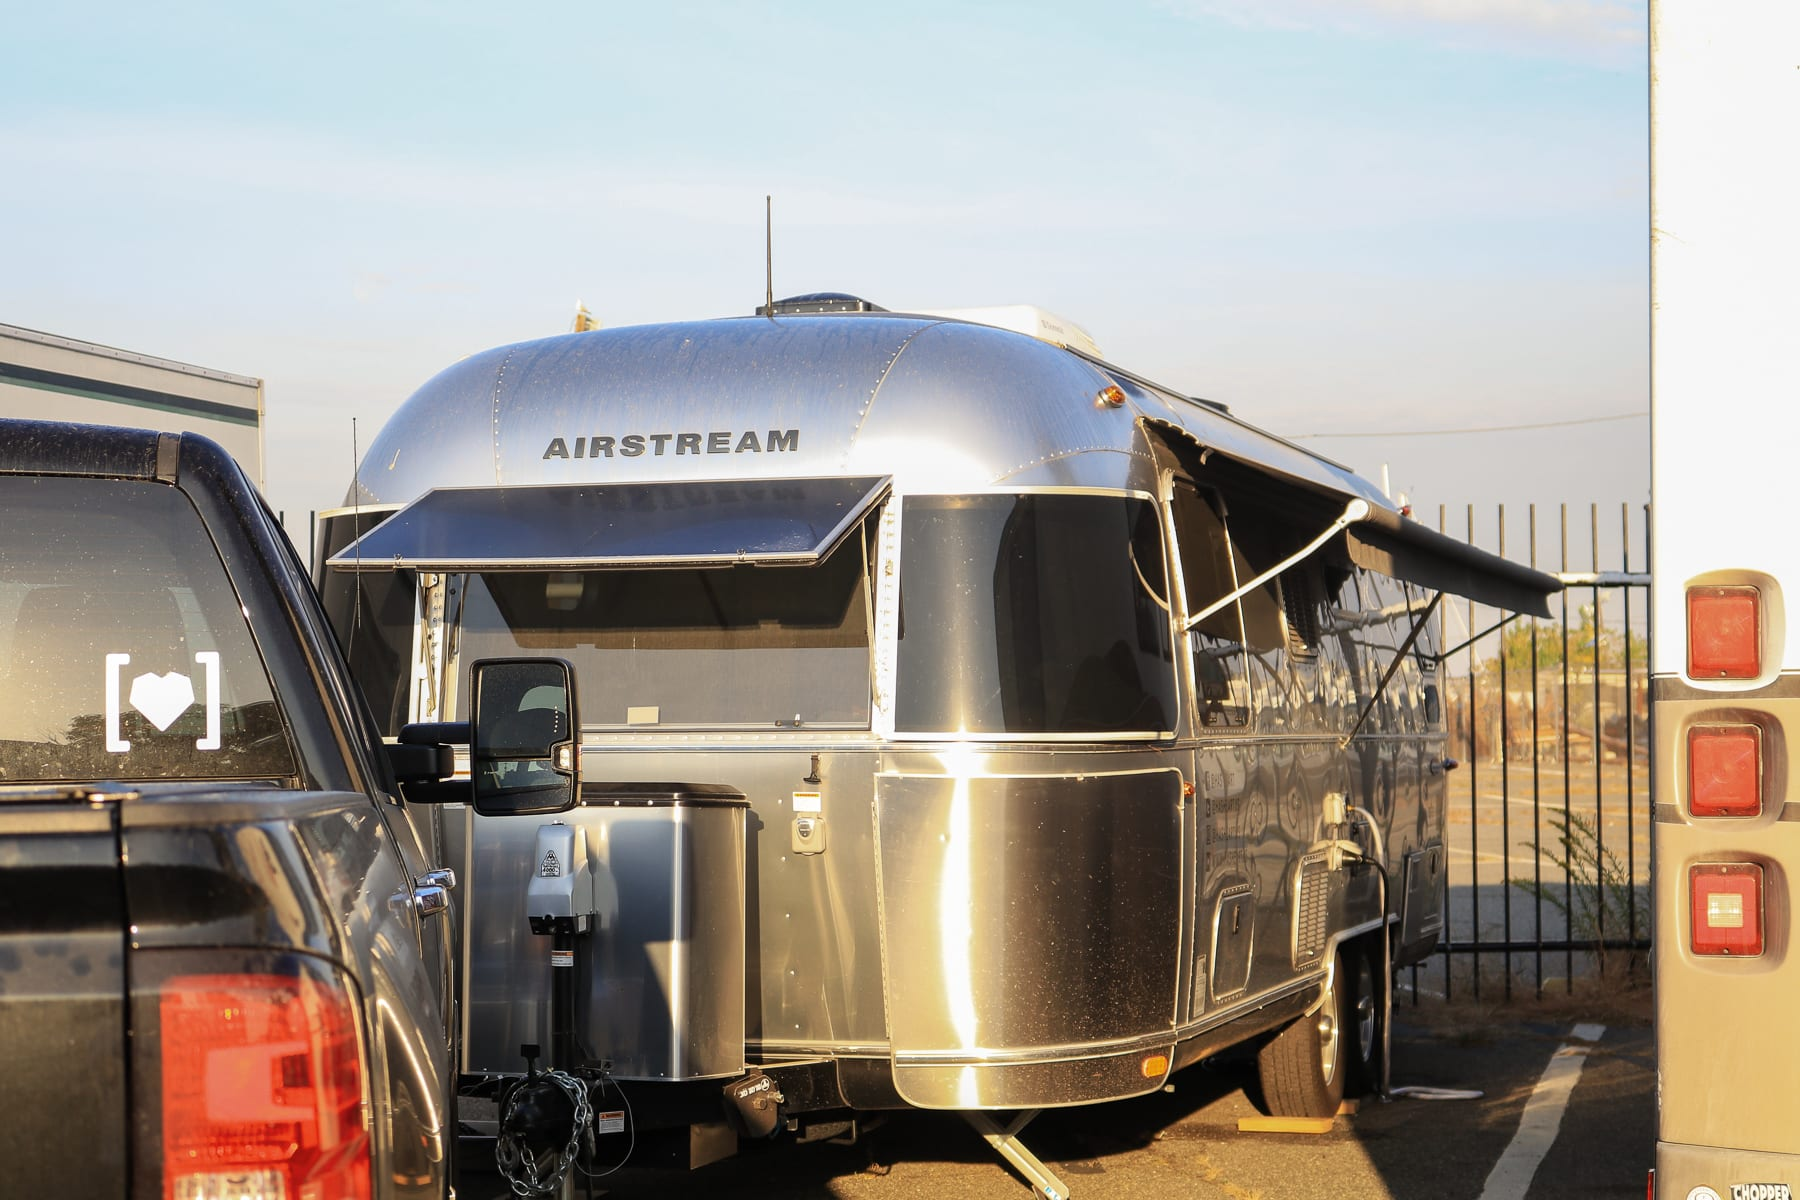 08-NY-journey-airstream-home01.jpg